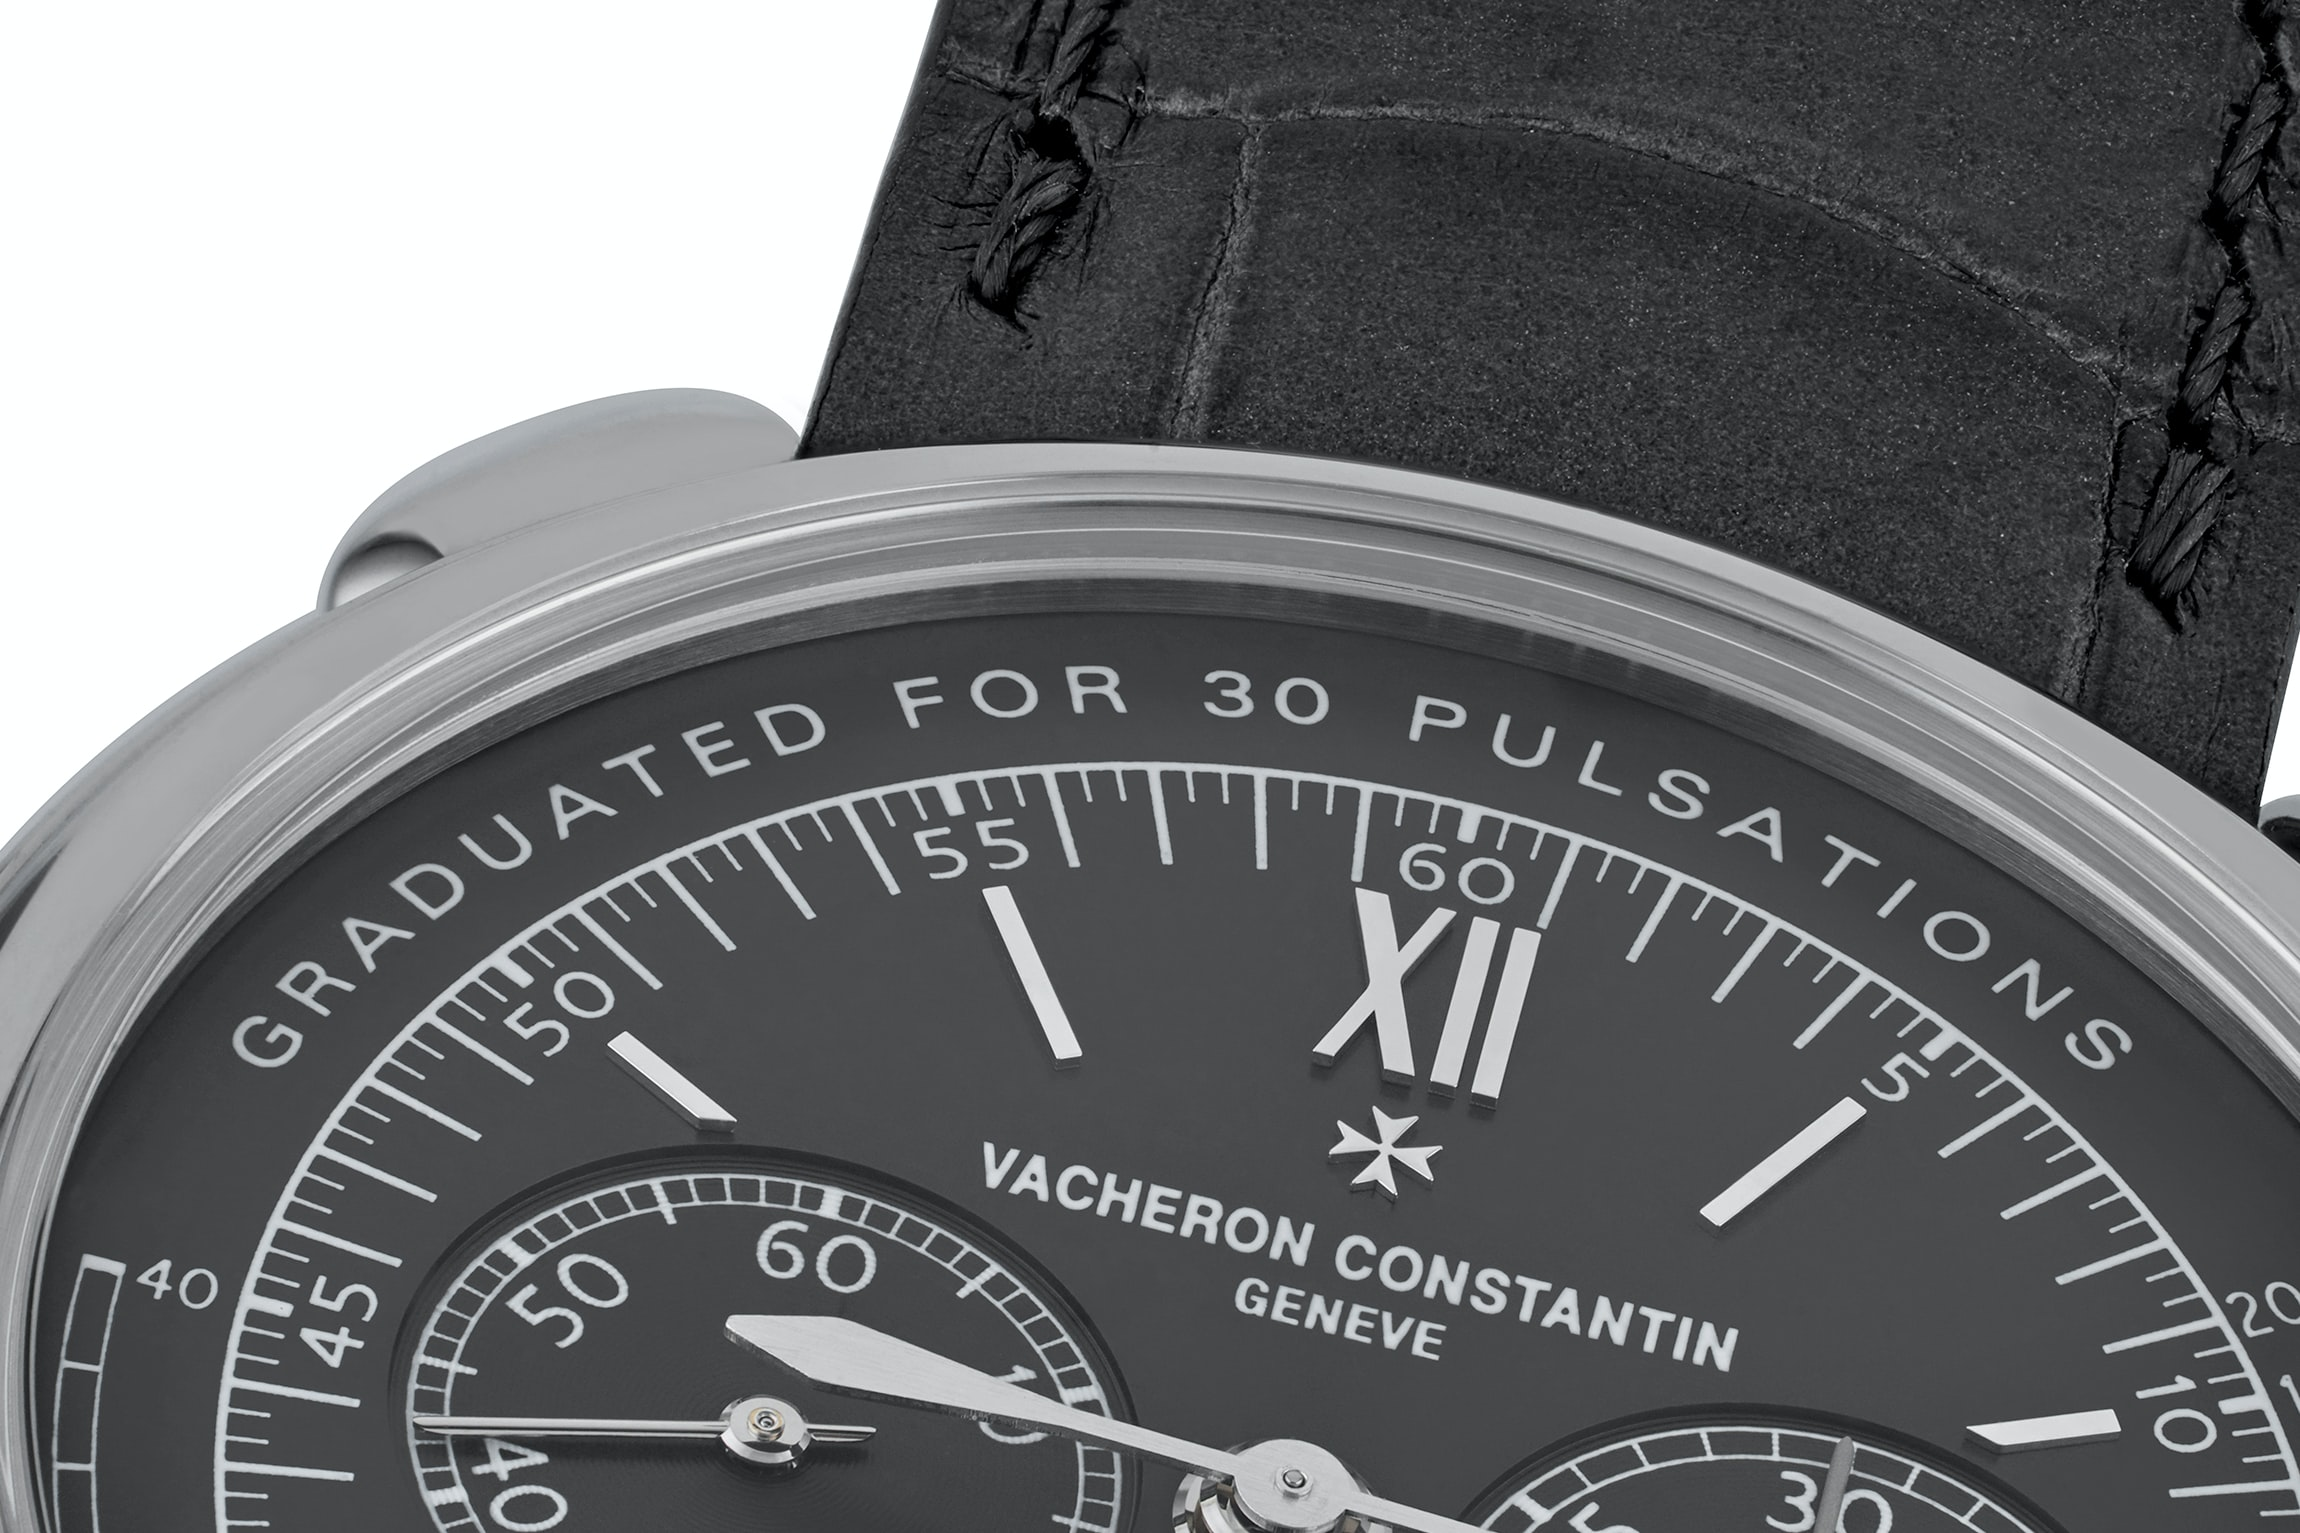 In The Shop: Introducing The Vacheron Constantin Historiques Cornes de Vache 1955 Limited Edition For HODINKEE In The Shop: Introducing The Vacheron Constantin Historiques Cornes de Vache 1955 Limited Edition For HODINKEE Vacharon pulsations clean1